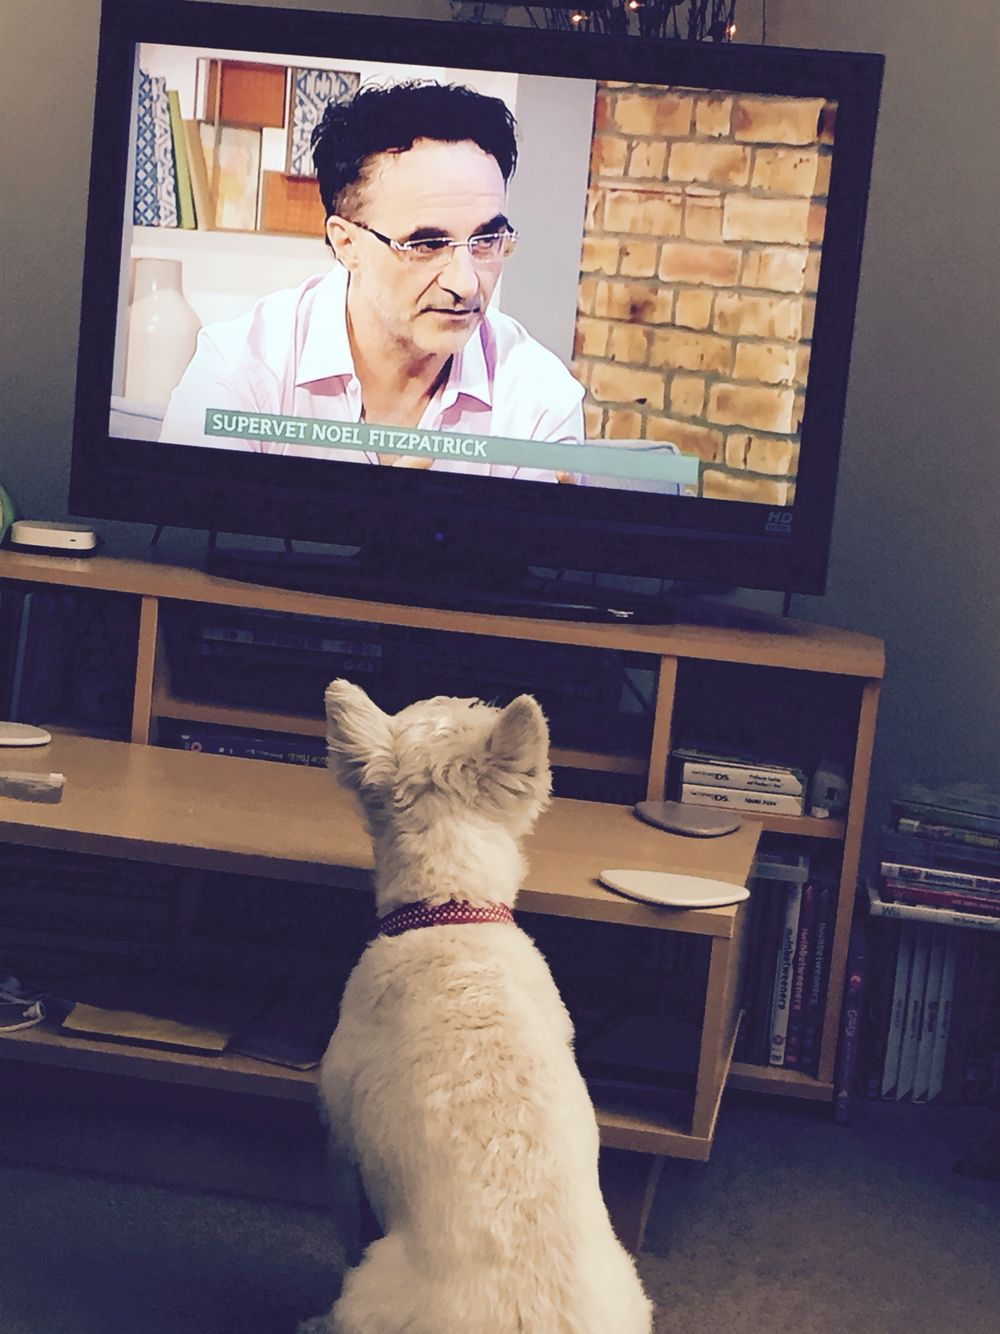 17 best images about supervet professor cats and 17 best images about supervet professor cats and jersey